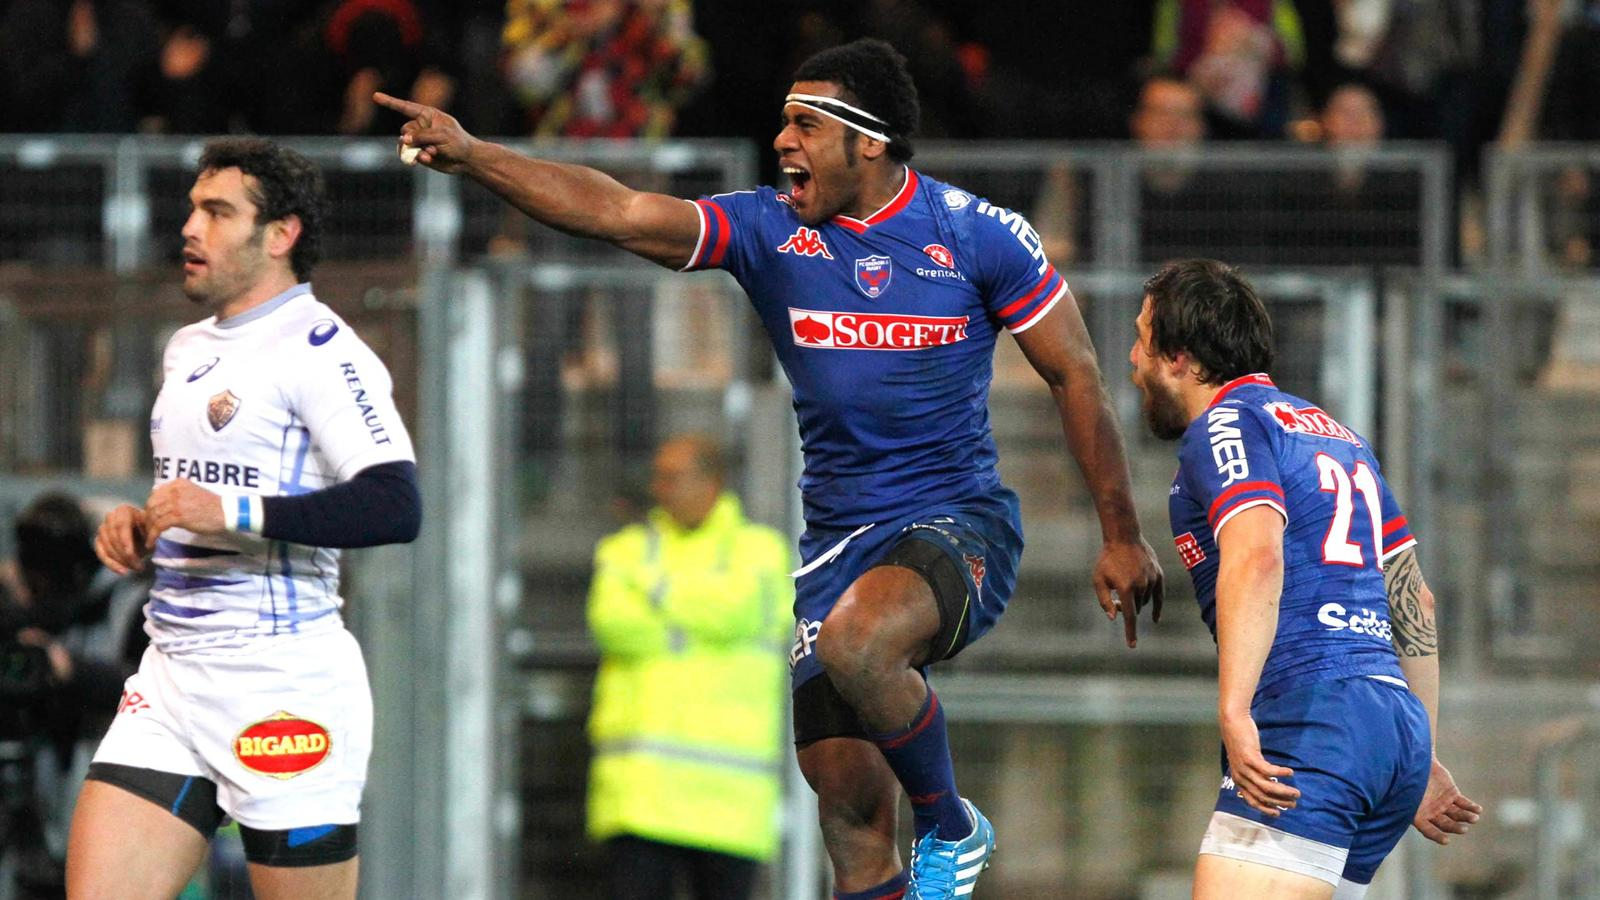 Match Castres Olympique vs Grenoble Rugby en direct live streaming